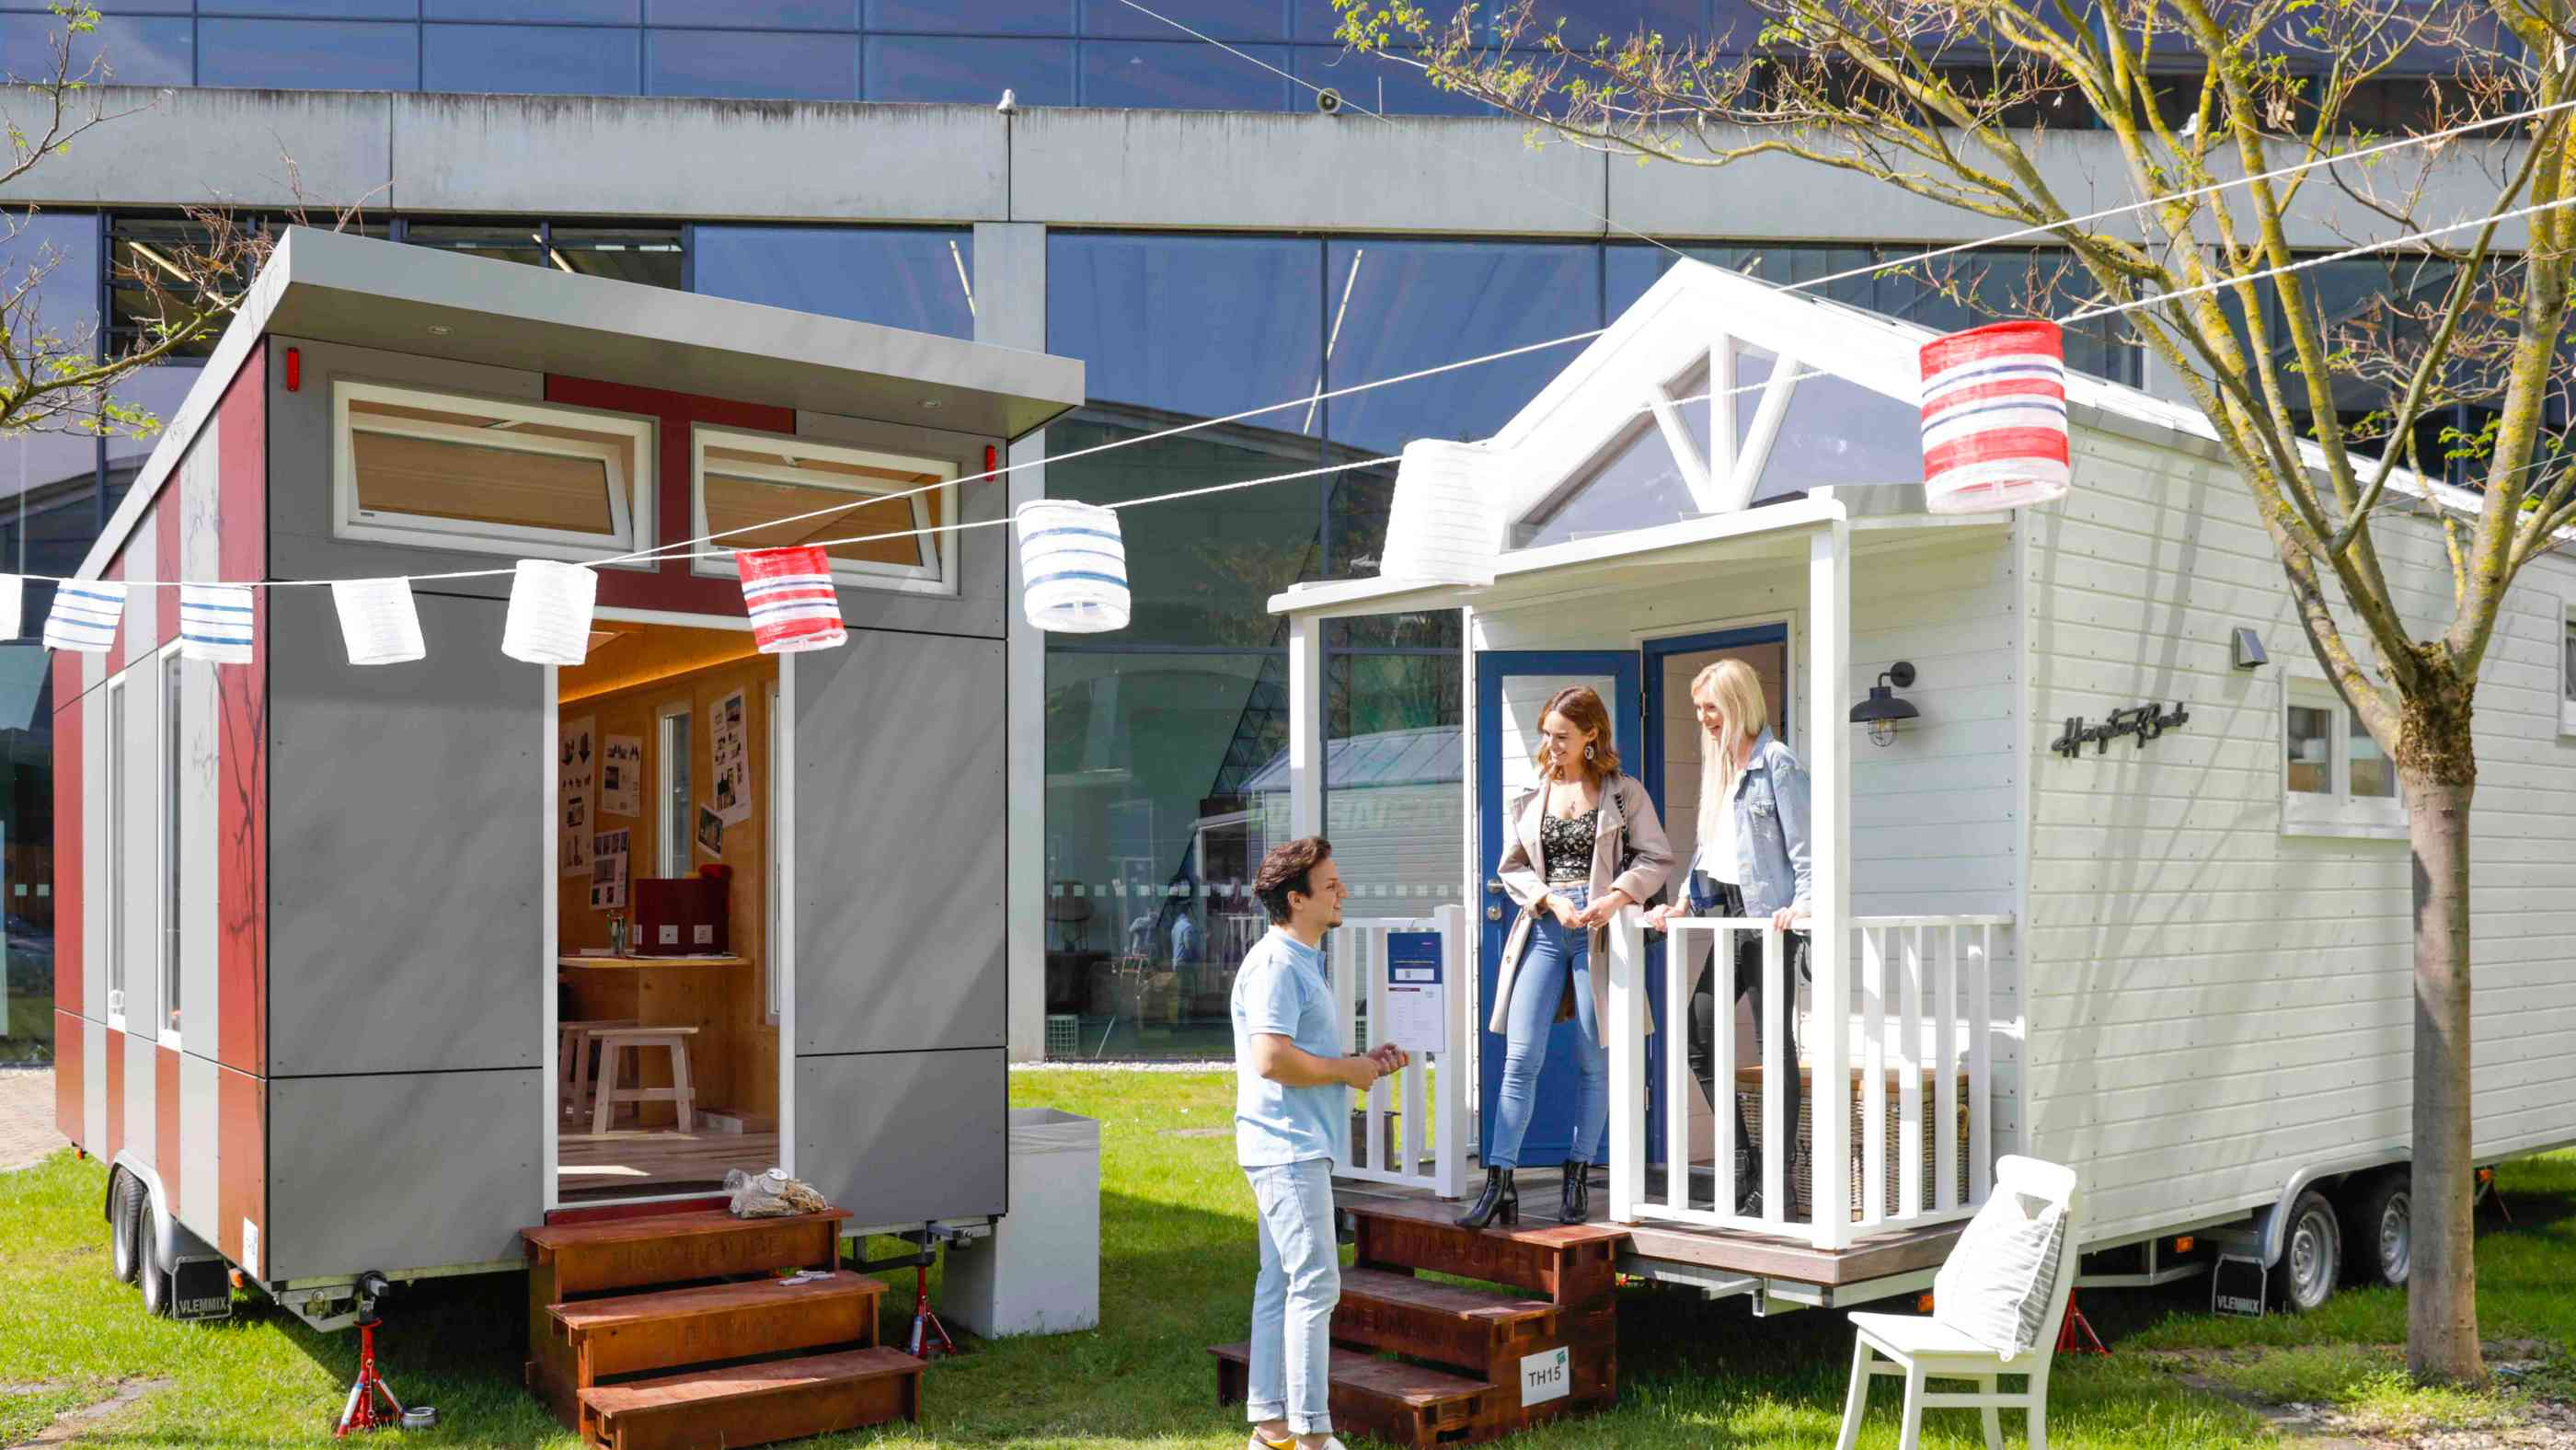 Tiny House Festival in Karlsruhe